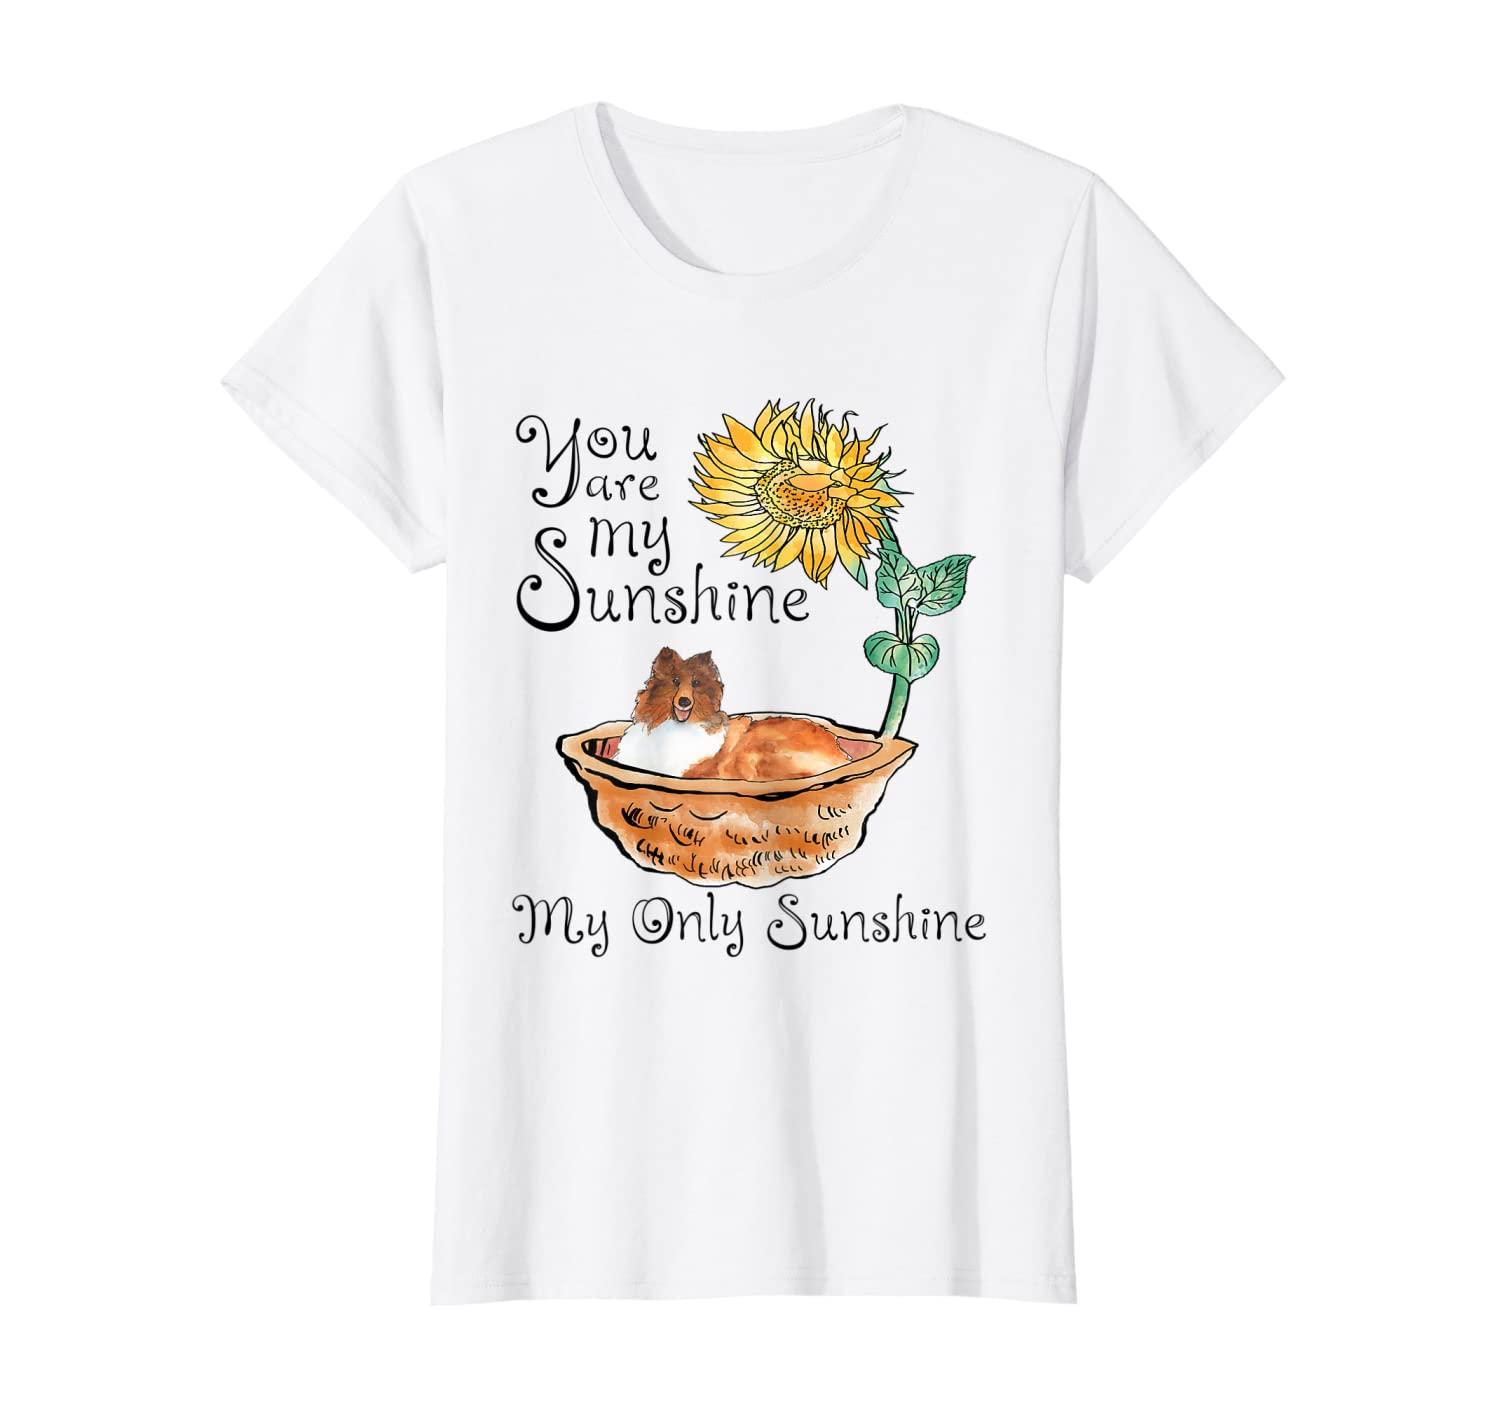 You Are My Sunshine Scotch Collie T Shirt, Sunflower And Sco